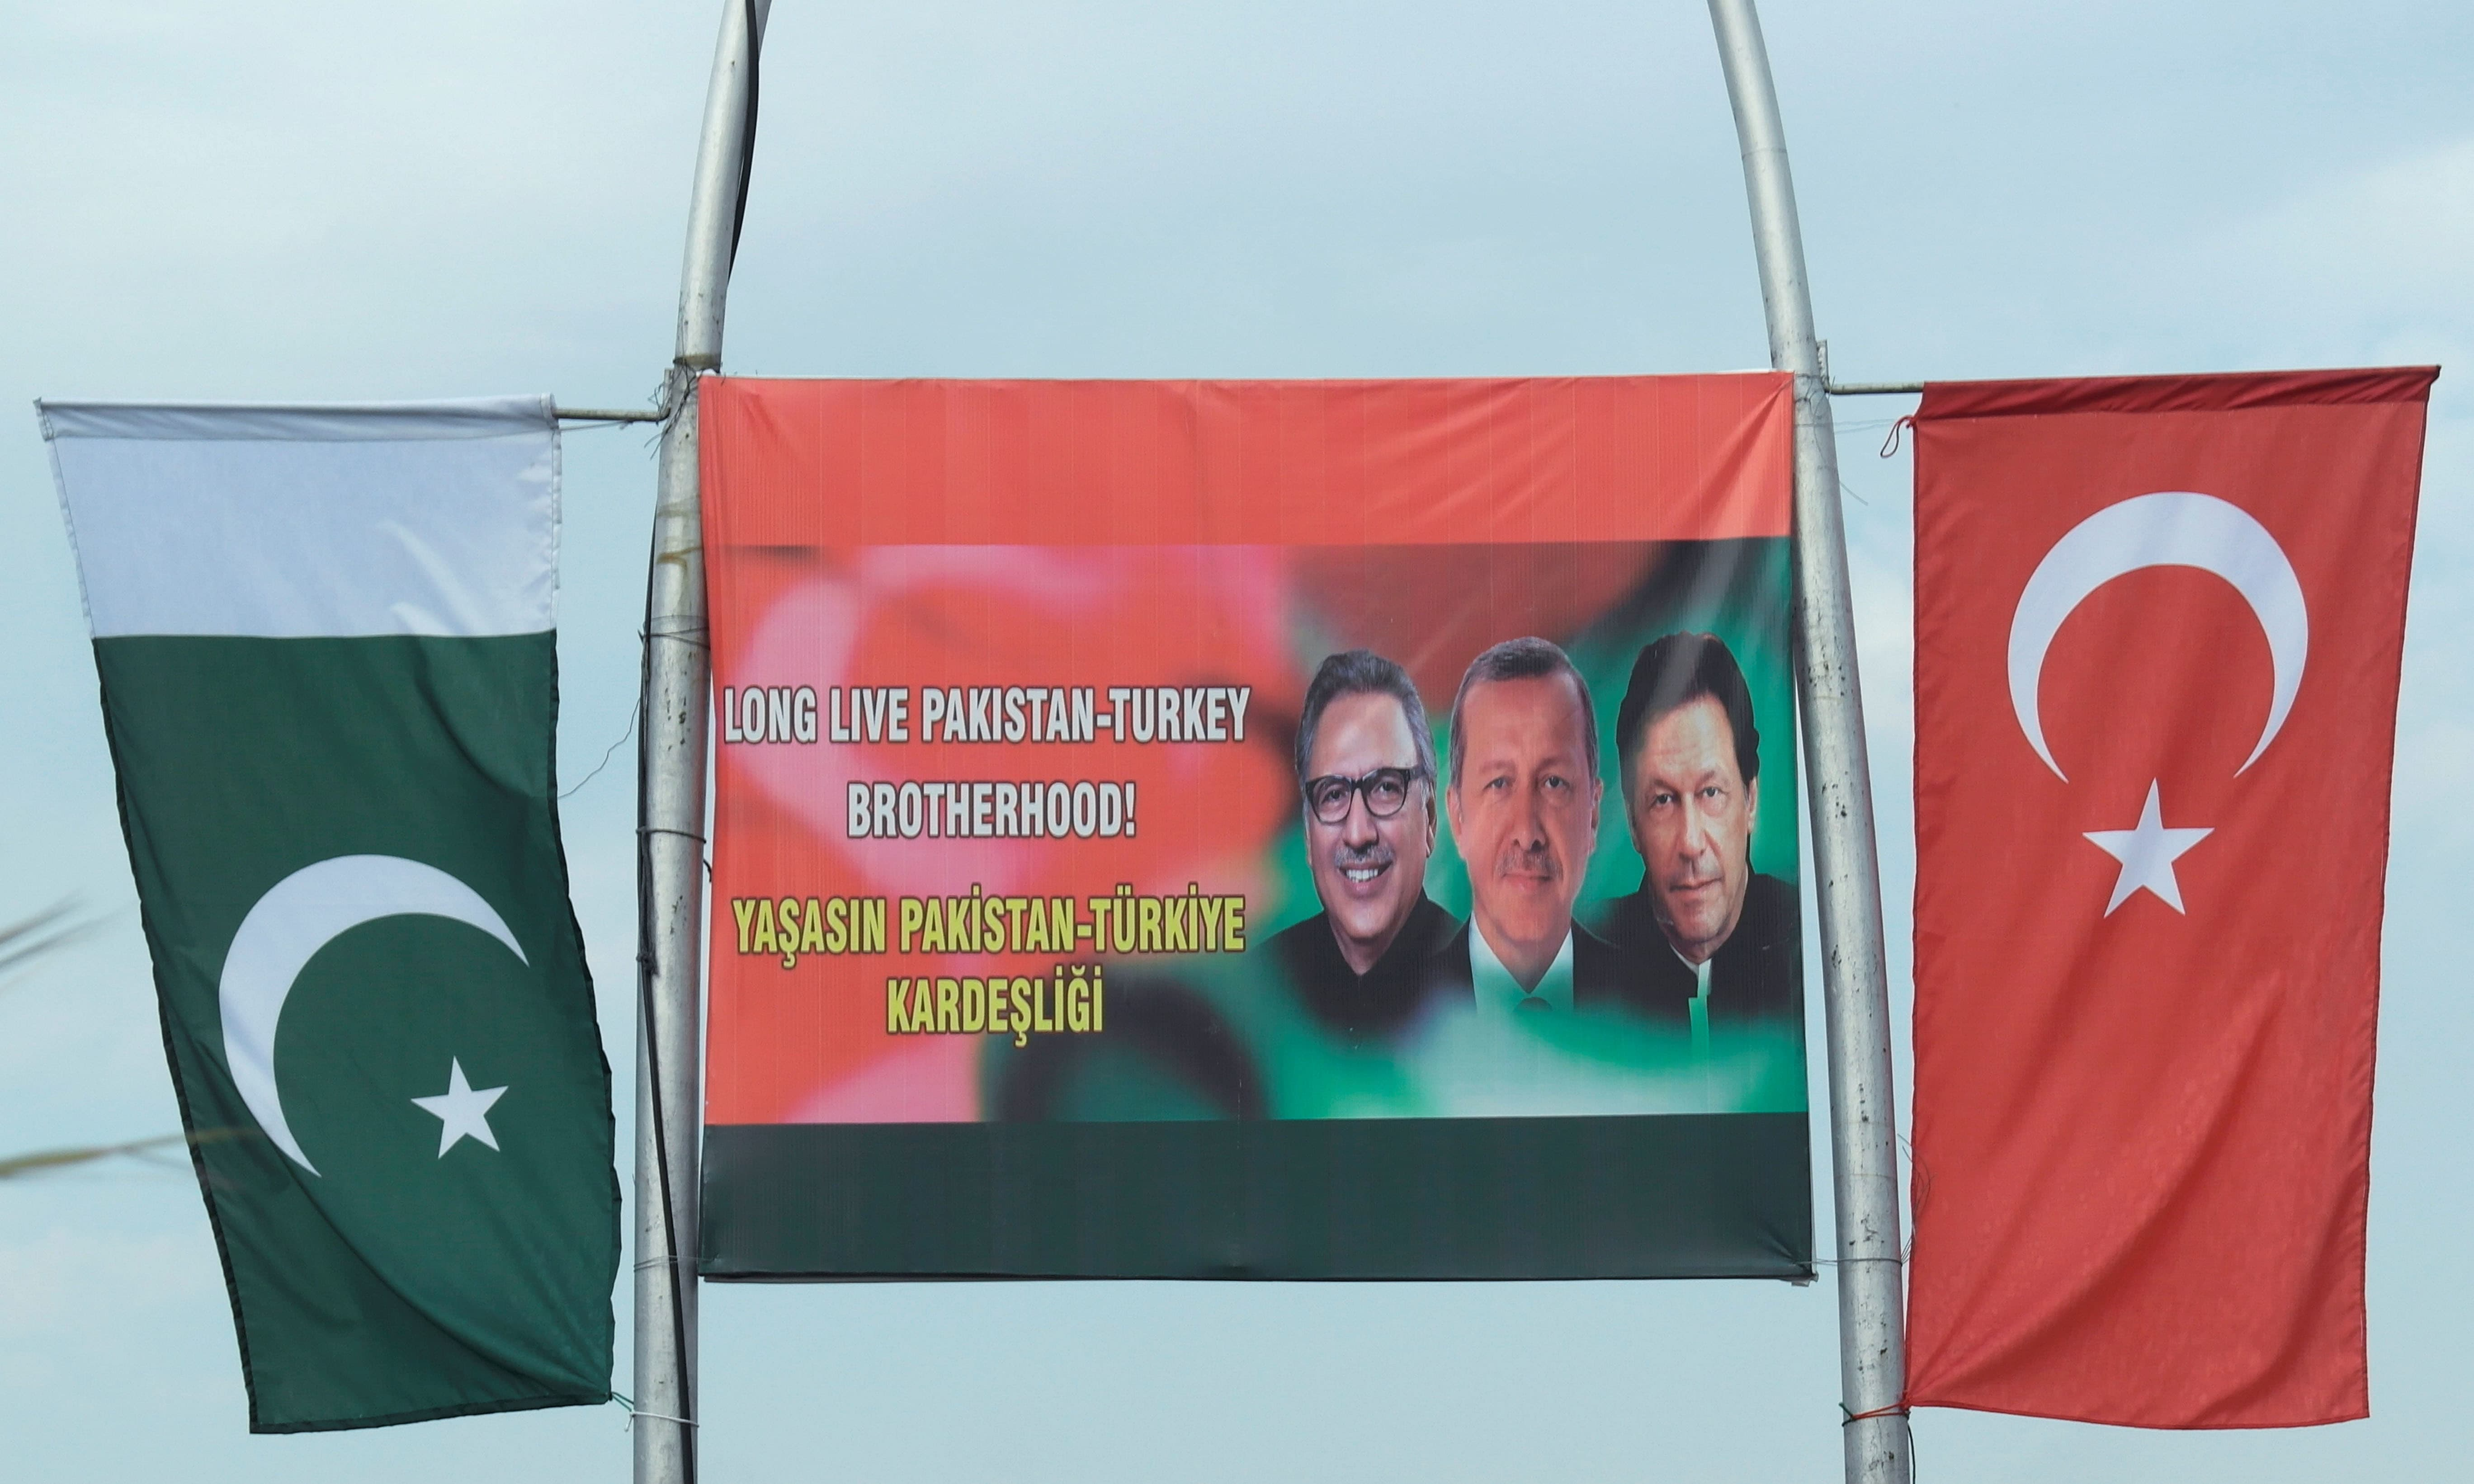 Pakistan and Turkey's national flags are seen on poles next to a sing showing President Arif Alvi, Turkish President Tayyip Erdogan and Prime Minister Imran Khan in Islamabad on February 13. — Reuters